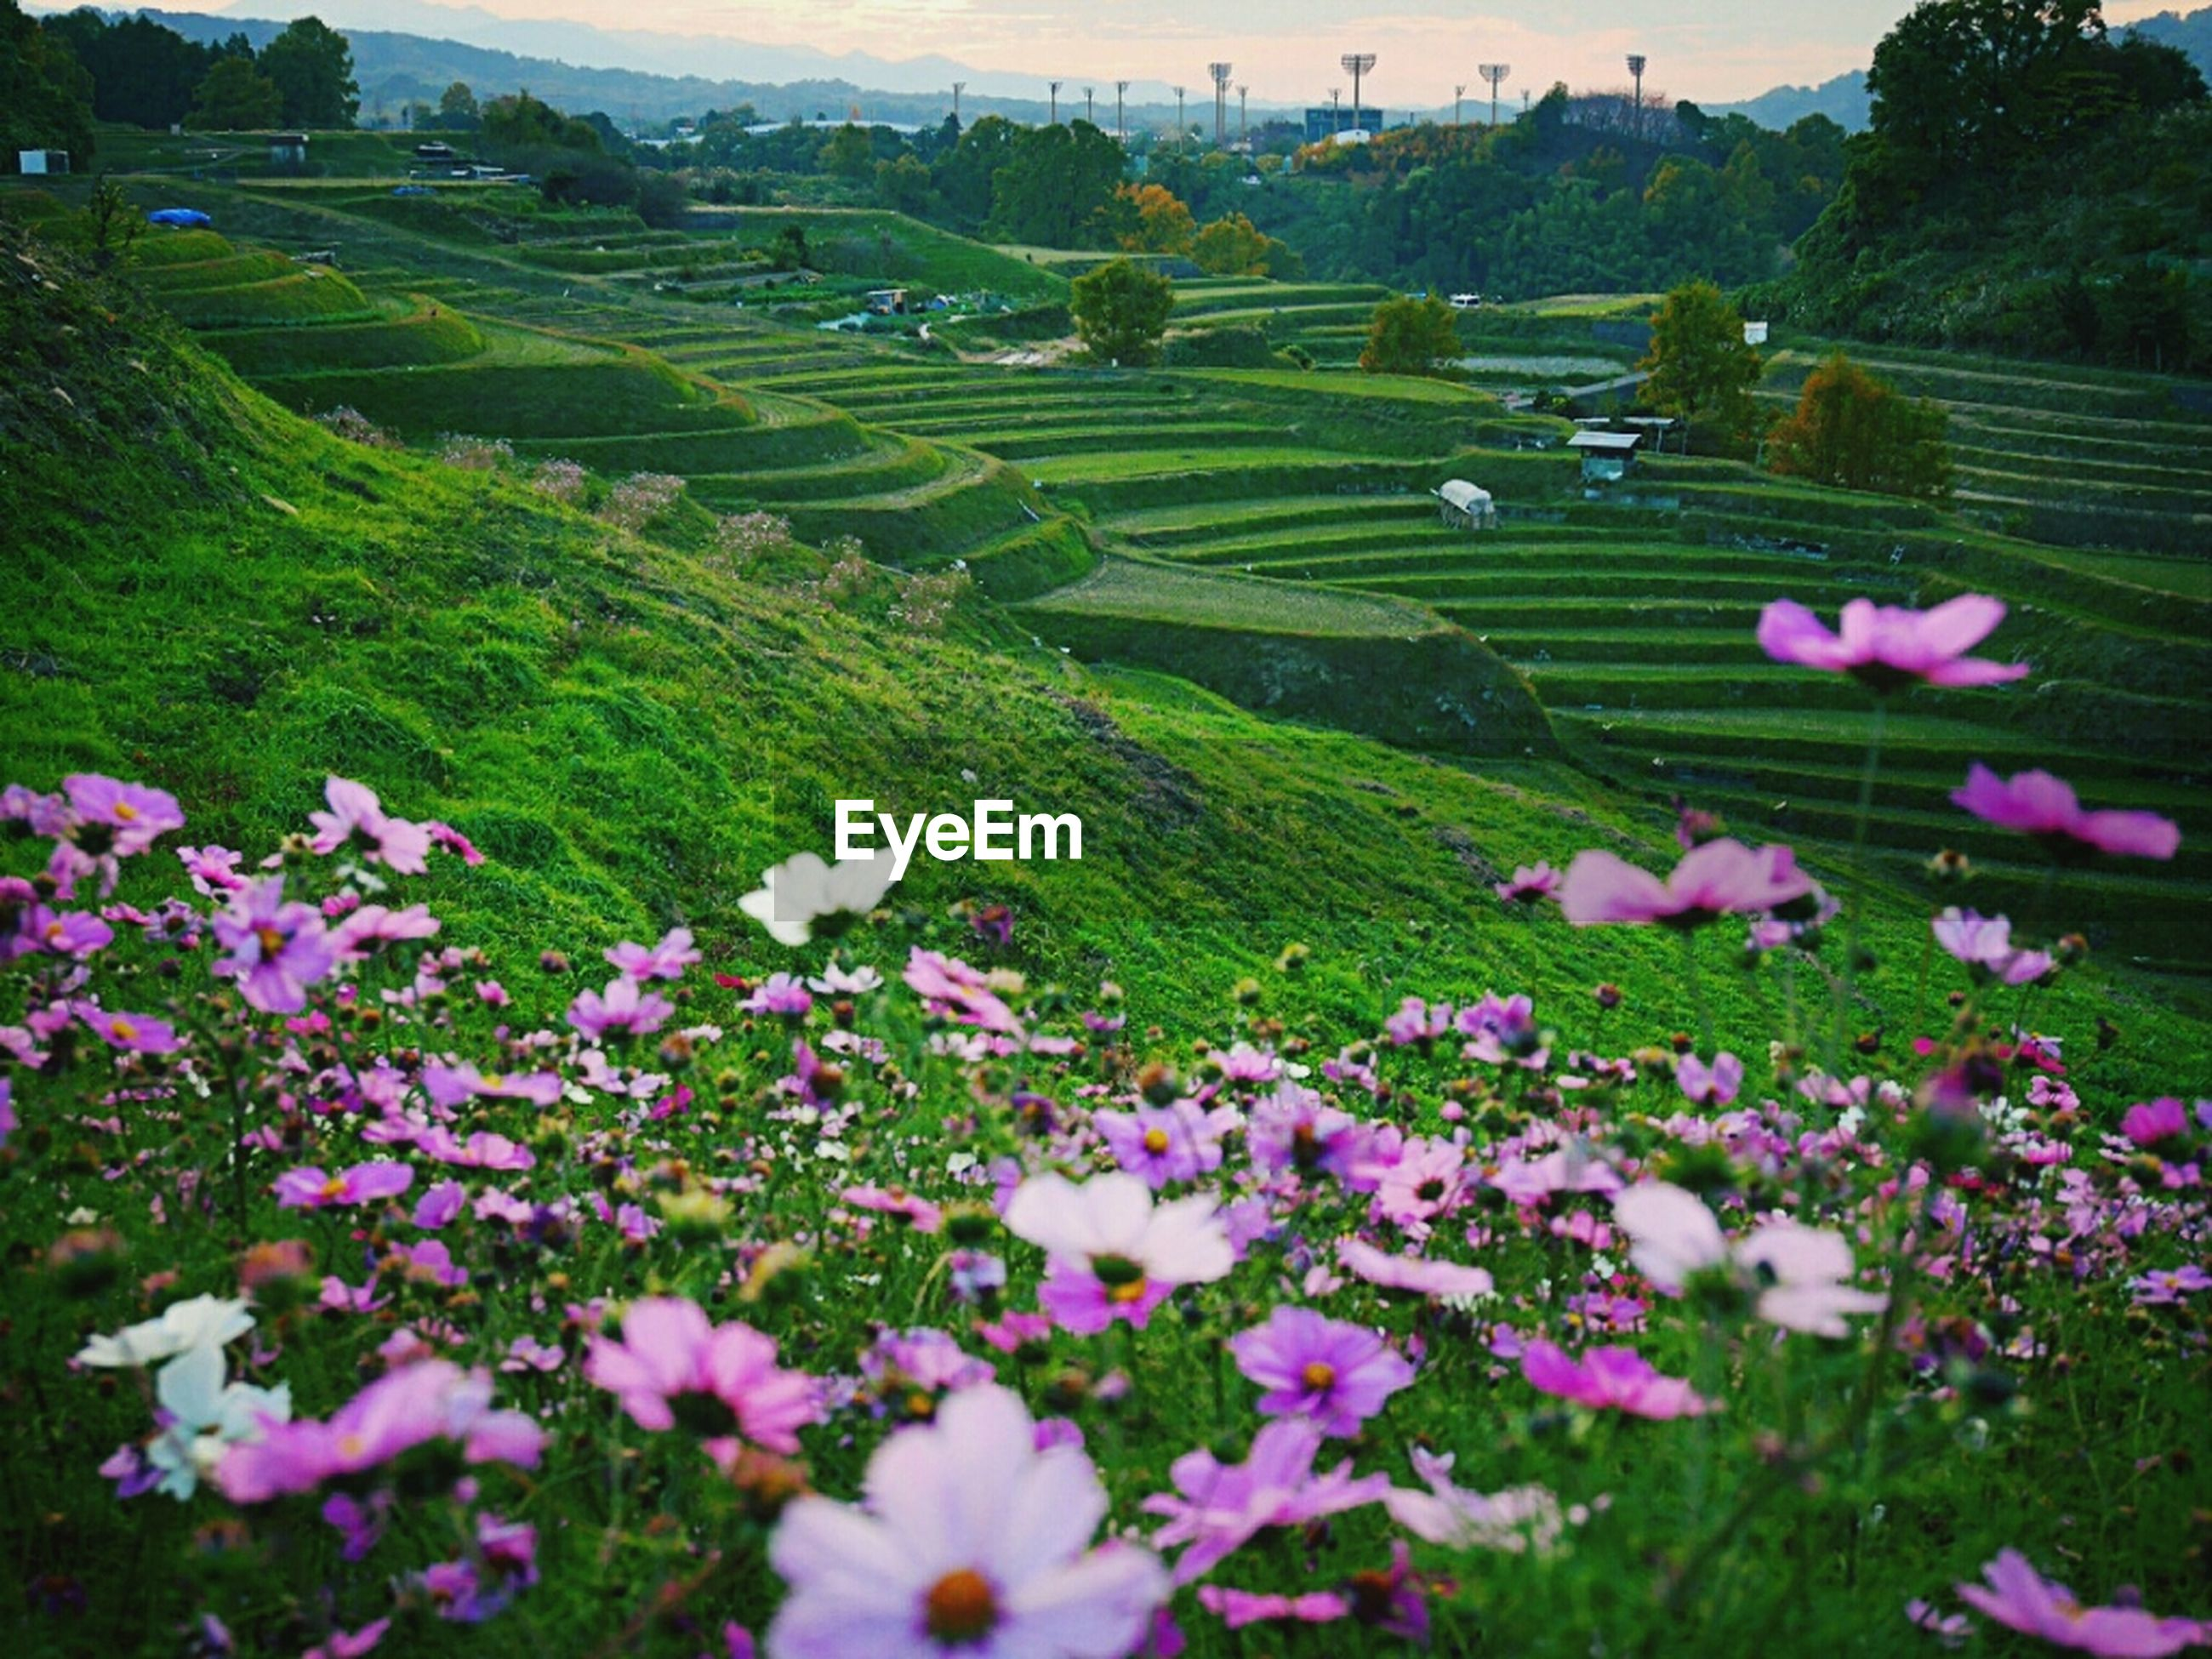 flower, freshness, beauty in nature, growth, fragility, blooming, nature, plant, tranquil scene, petal, field, landscape, tranquility, scenics, in bloom, high angle view, pink color, green color, day, outdoors